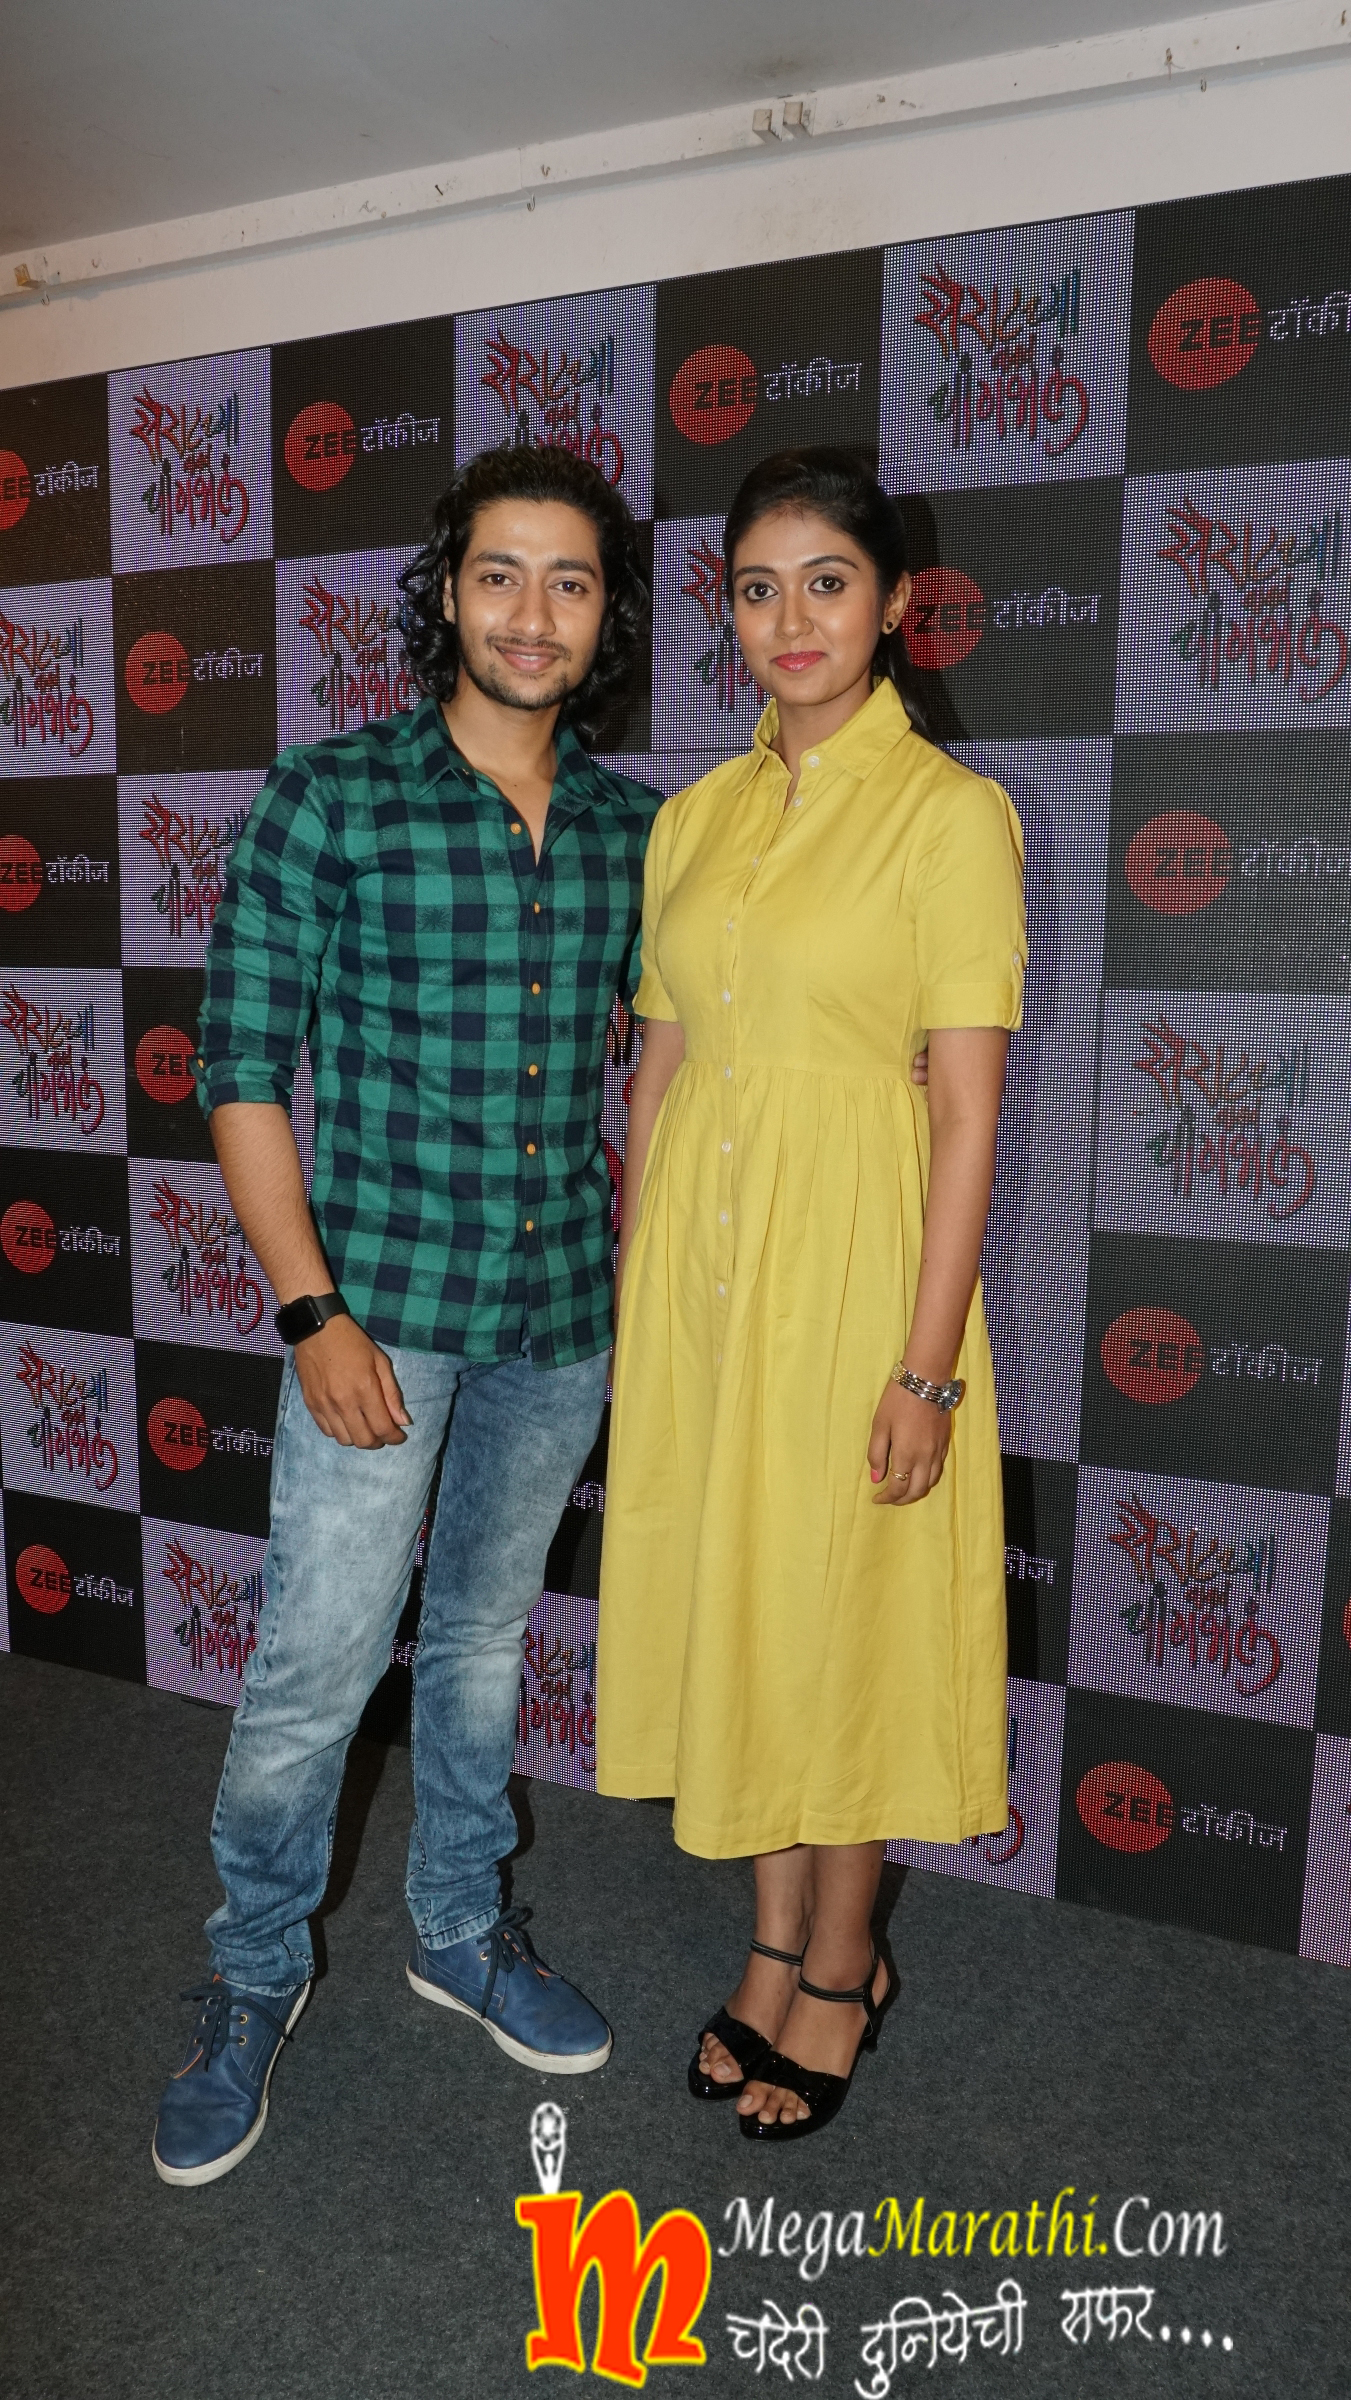 Sairatchya Navan Changbhal Photos Archi and Parsha